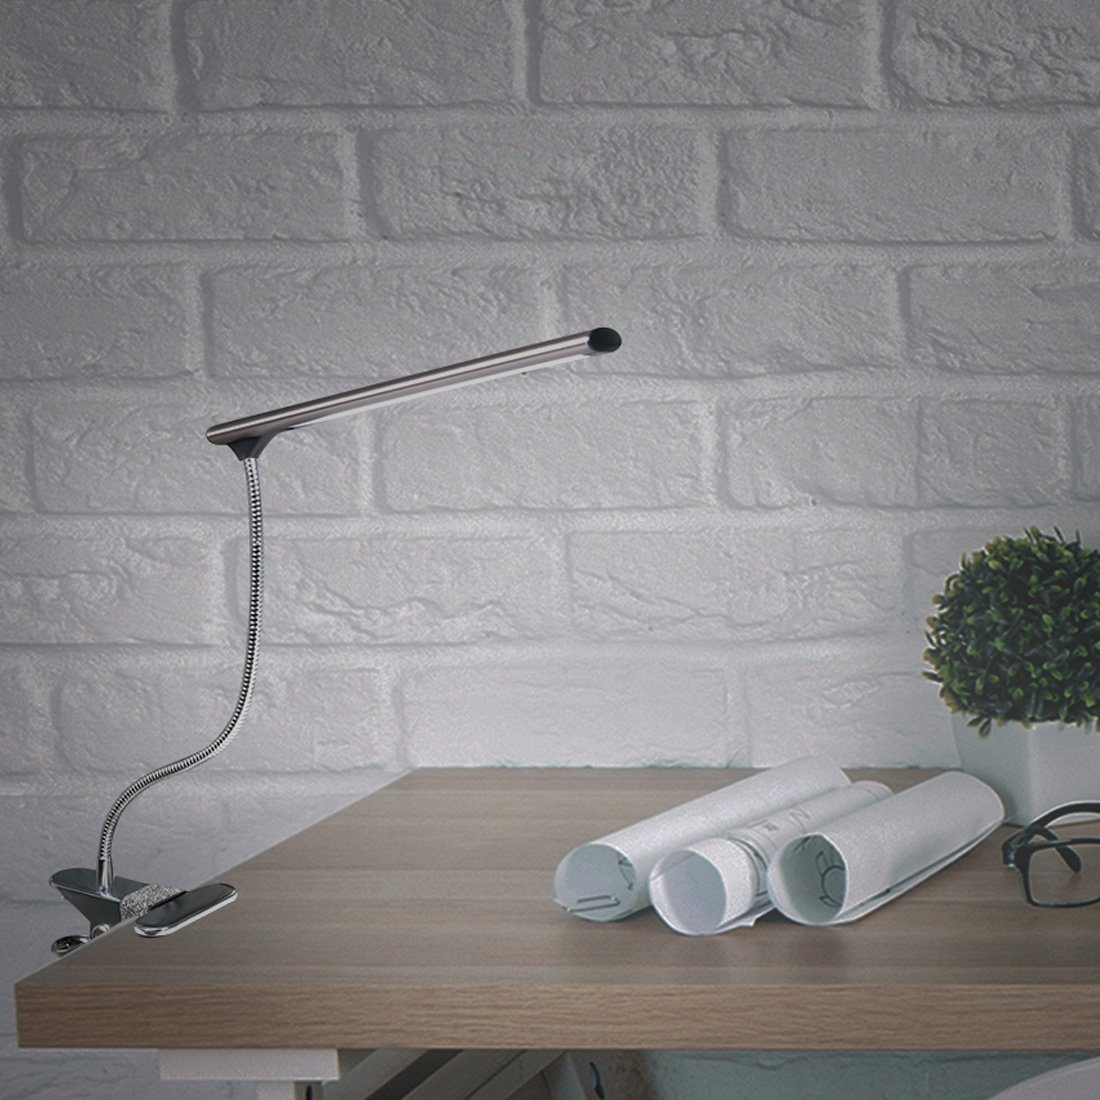 – CeSunlight LED Clip on Desk Lamp Bed Headboard Light with Clamp for Reading